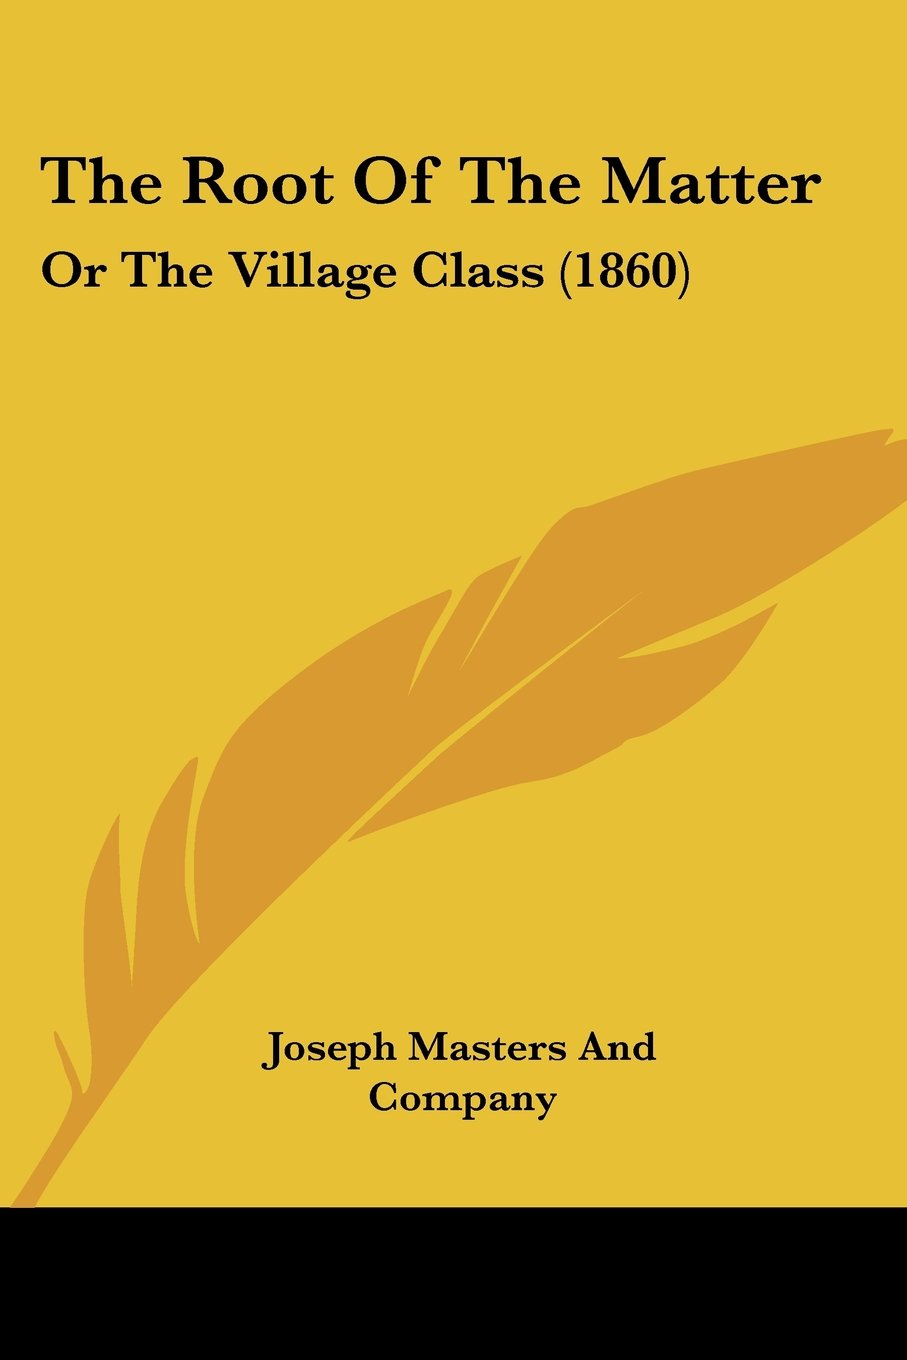 The Root Of The Matter: Or The Village Class (1860) pdf